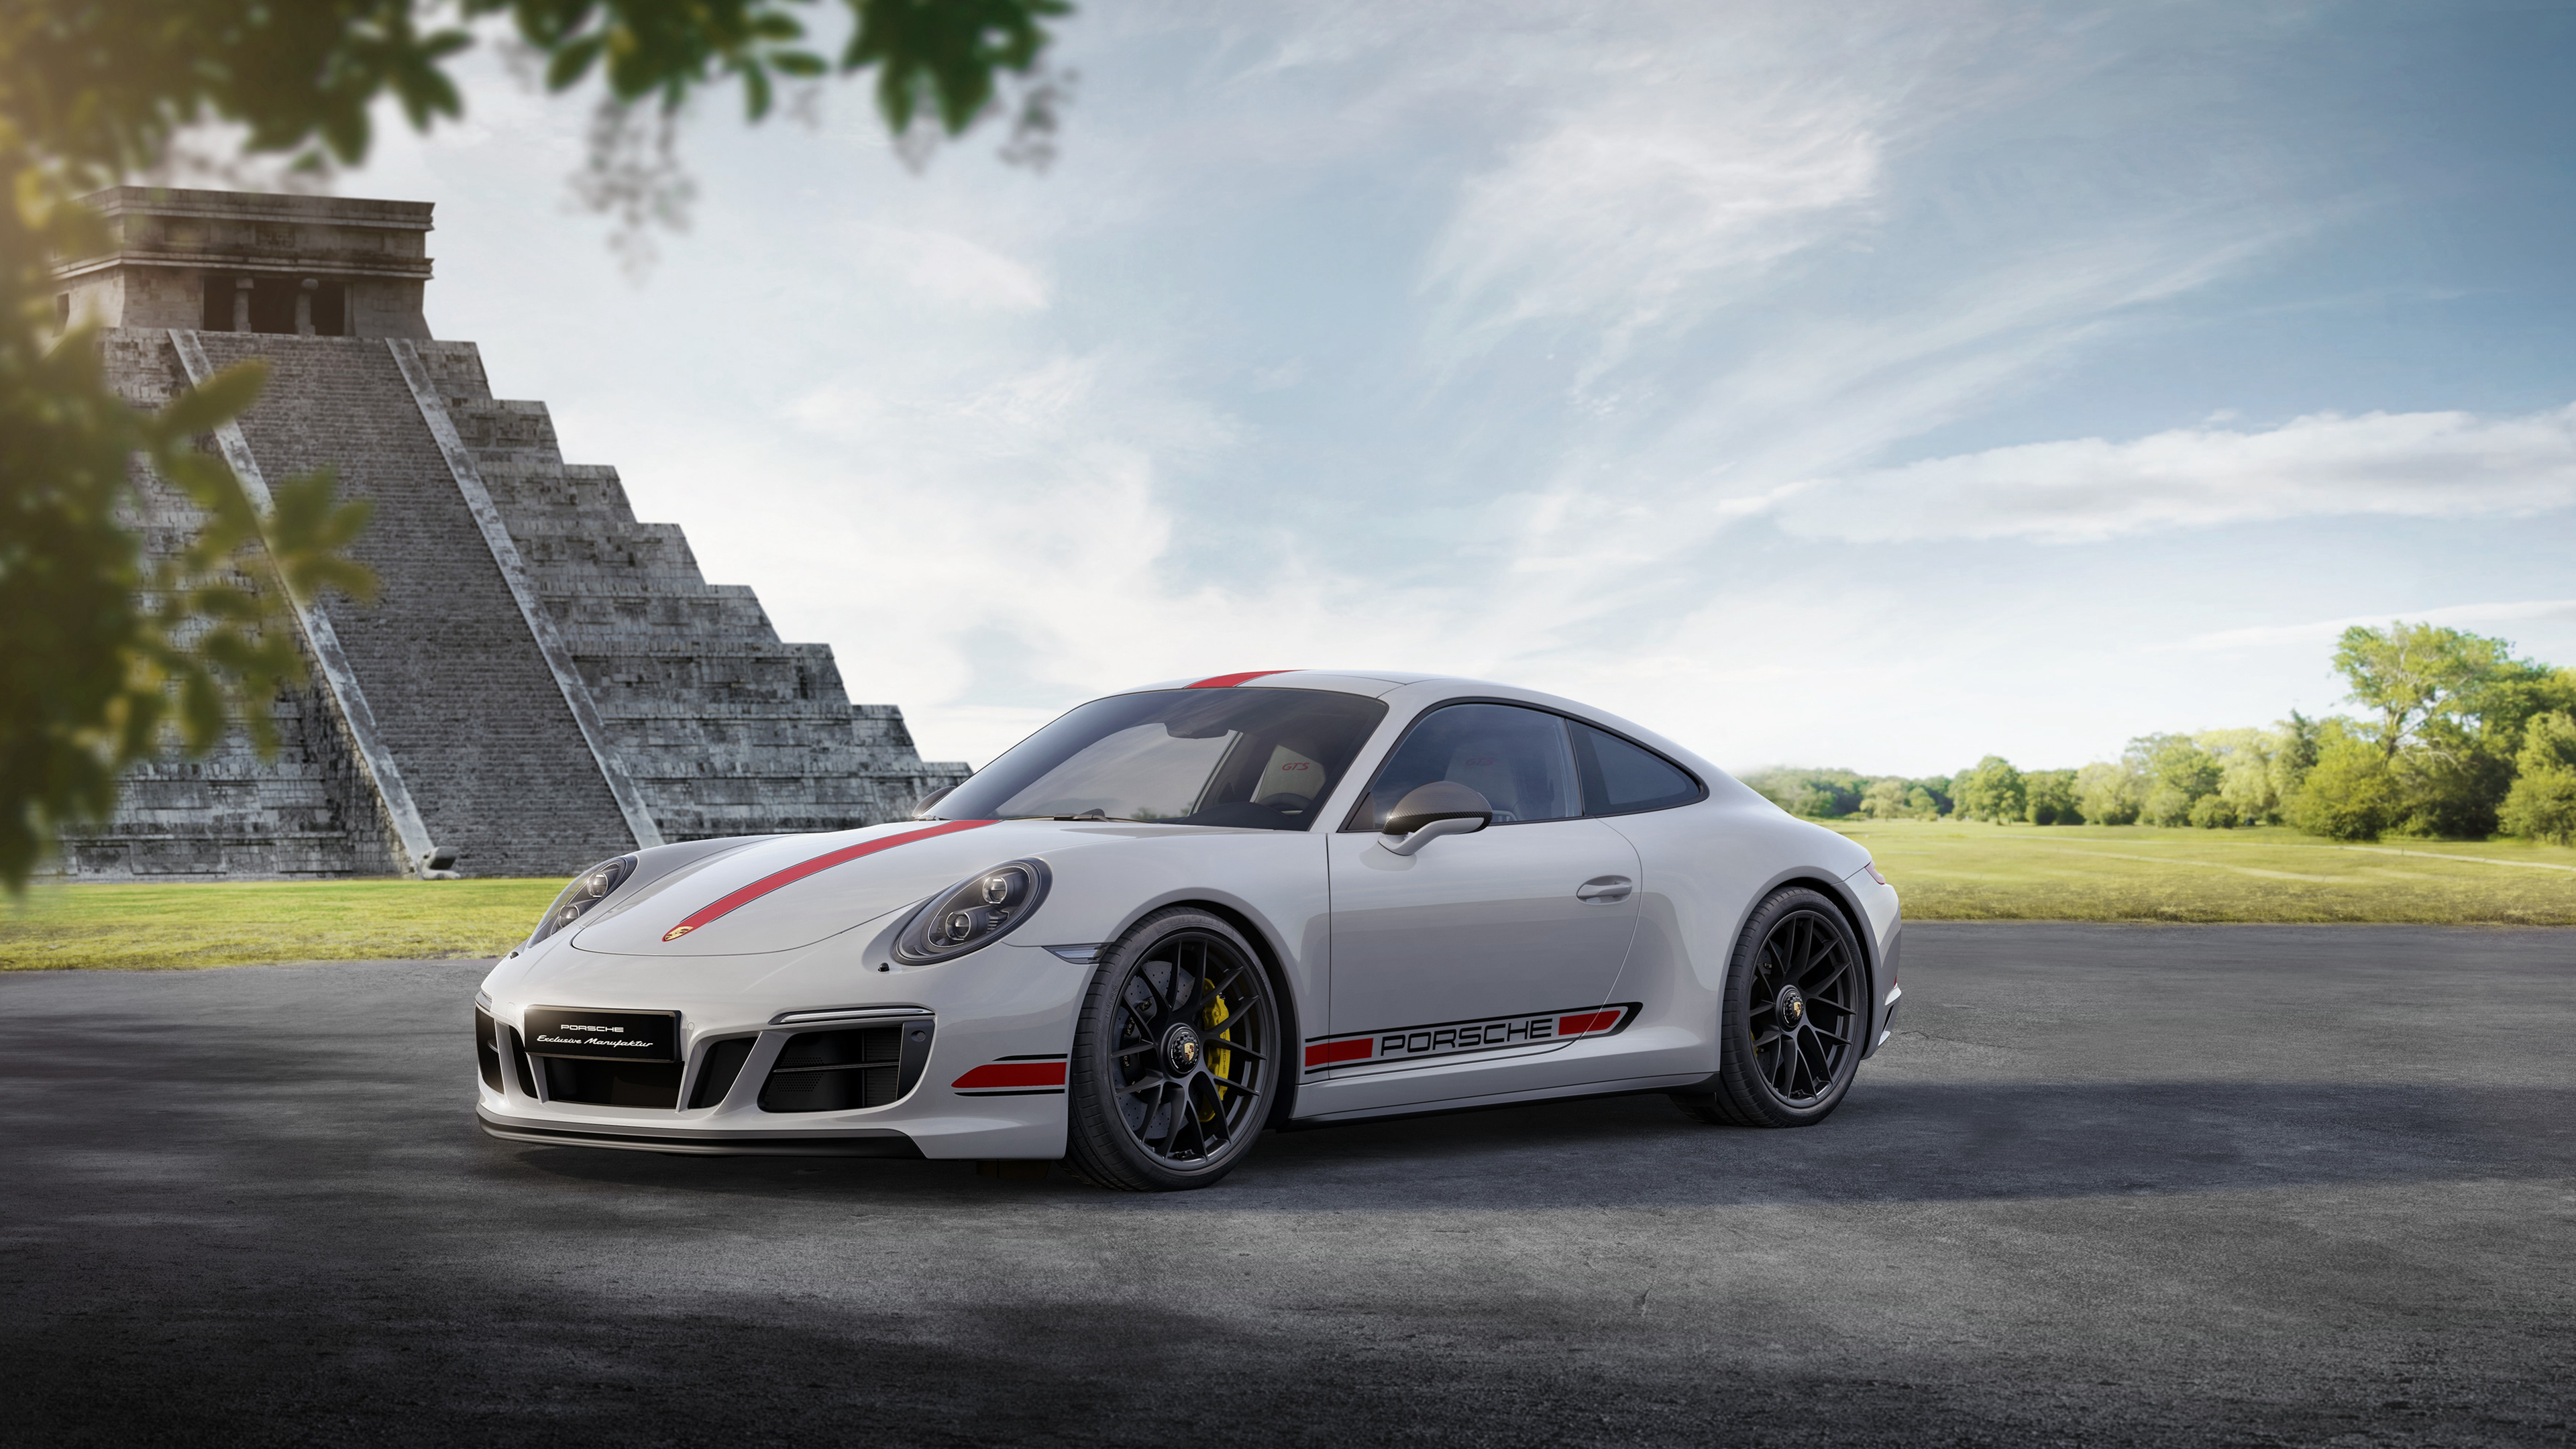 2017 porsche 911 carrera gts coupe 15 years porsche mexico 4k wallpaper hd car wallpapers id. Black Bedroom Furniture Sets. Home Design Ideas